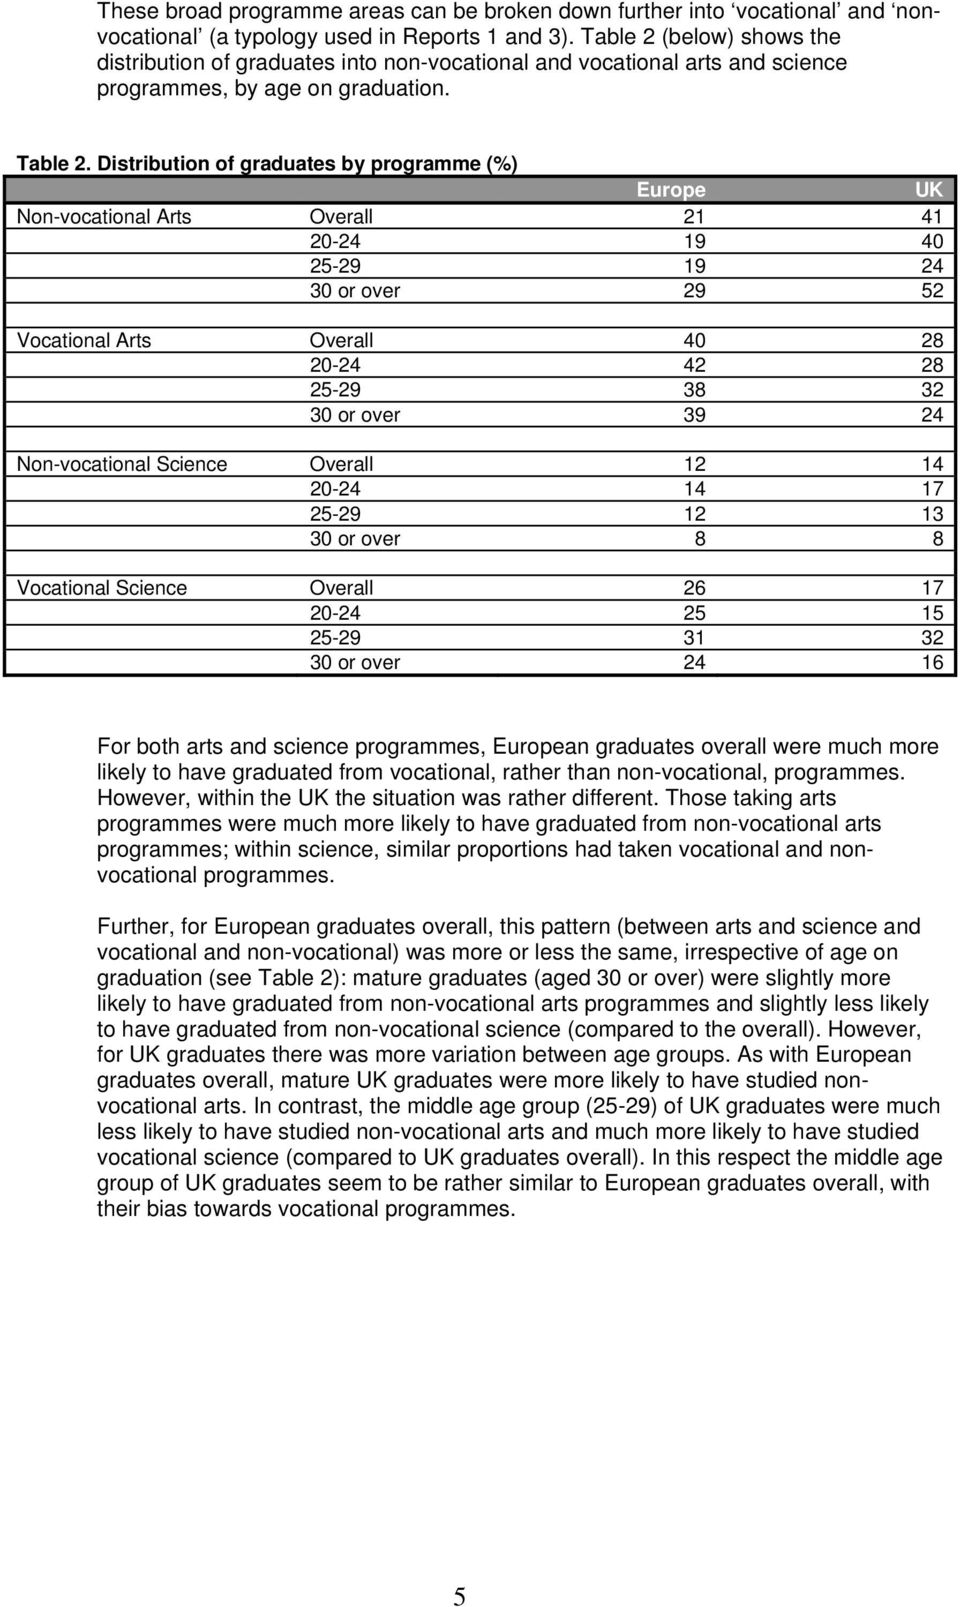 Distribution of graduates by programme (%) Europe UK Non-vocational Arts Overall 21 41 20-24 19 40 25-29 19 24 30 or over 29 52 Vocational Arts Overall 40 28 20-24 42 28 25-29 38 32 30 or over 39 24